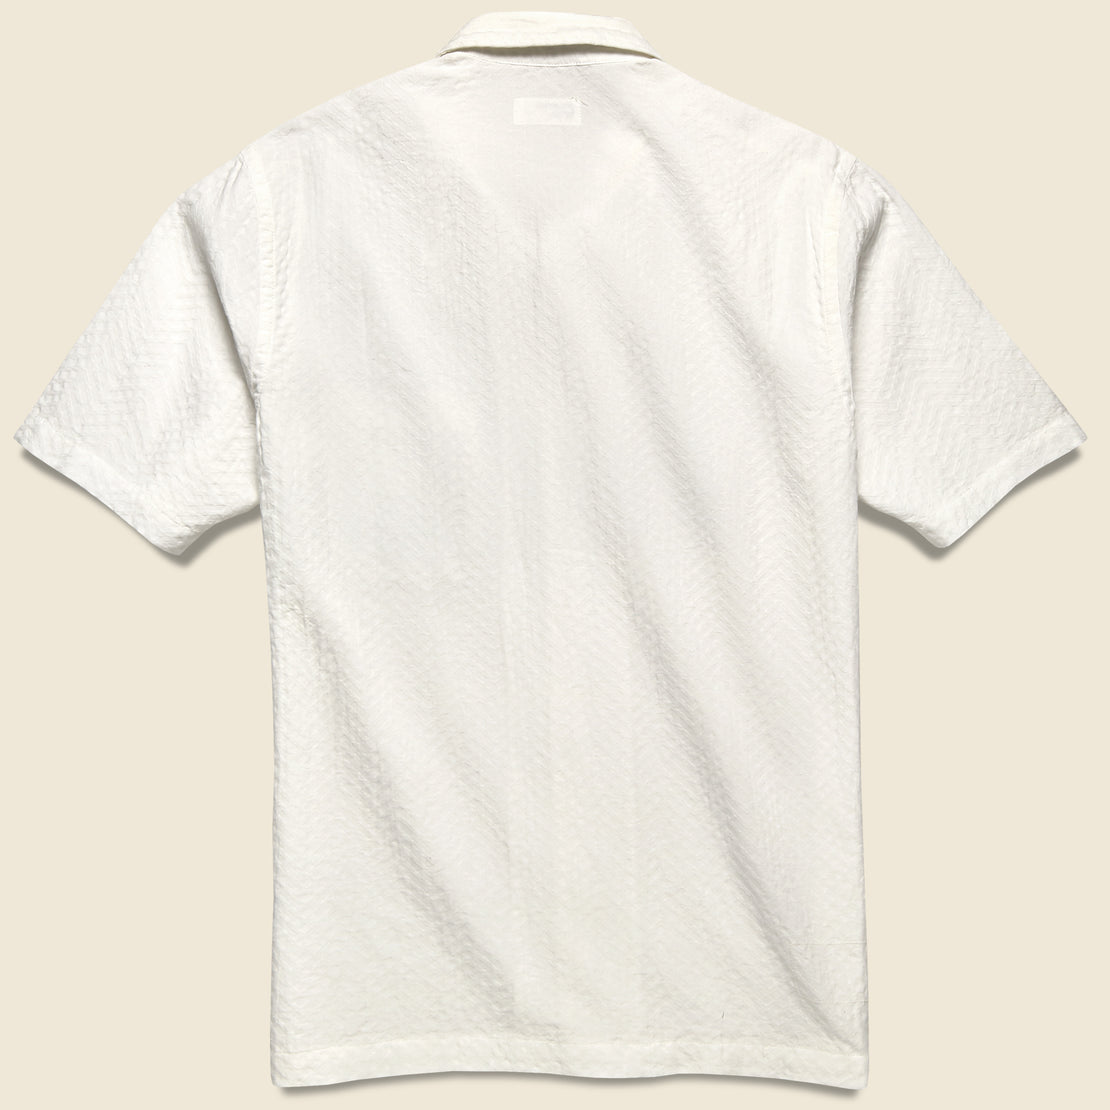 Road Shirt - White Weave